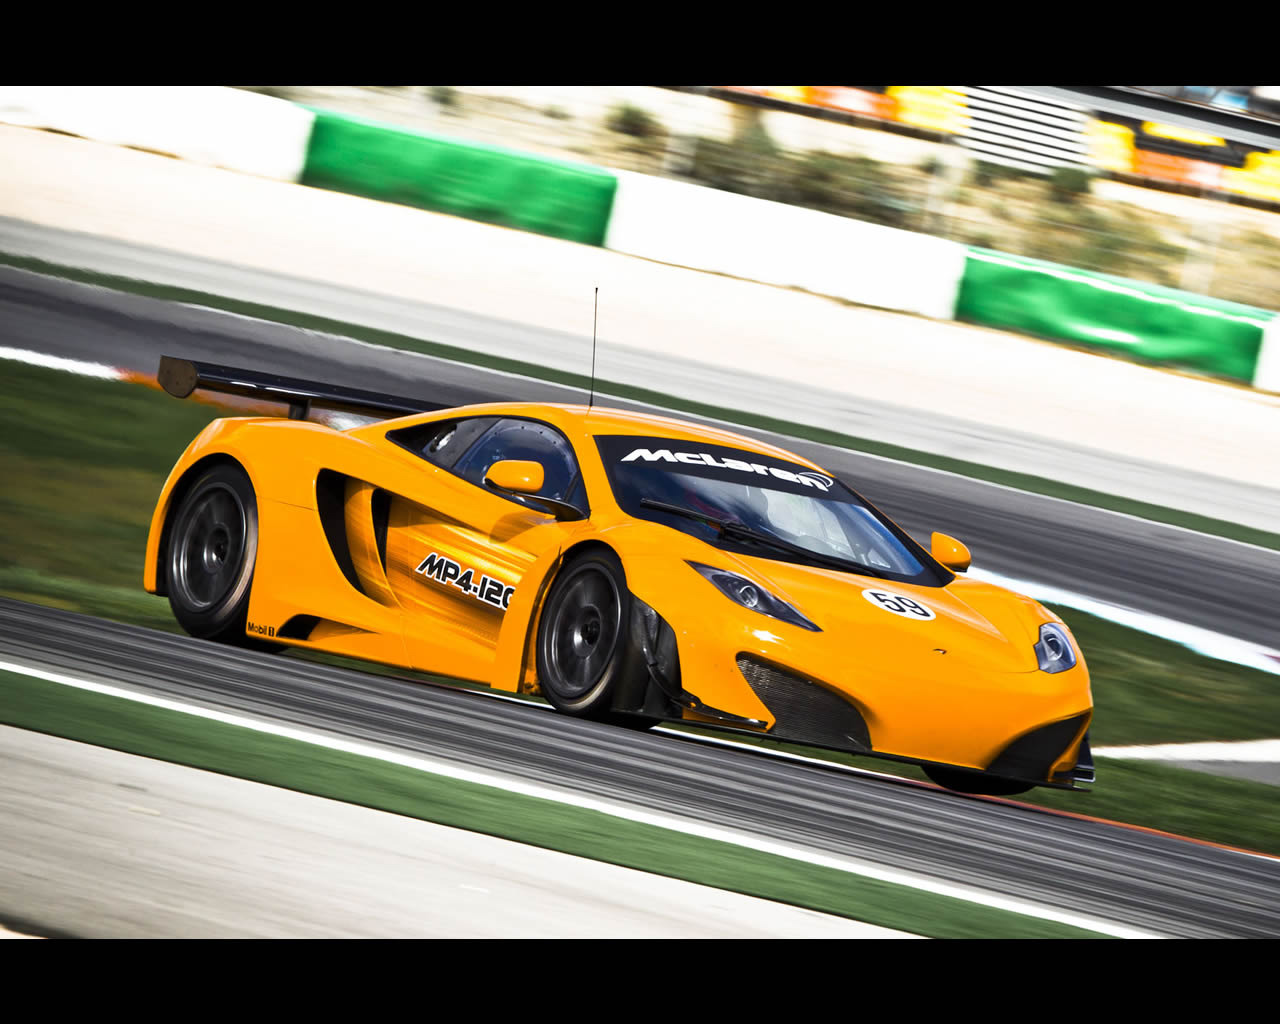 http://www.autoconcept-reviews.com/cars_reviews/mclaren/McLaren-MP4-12C-gt3-2011/wallpapers/mclaren-mp4-12c-gt3-2.jpg